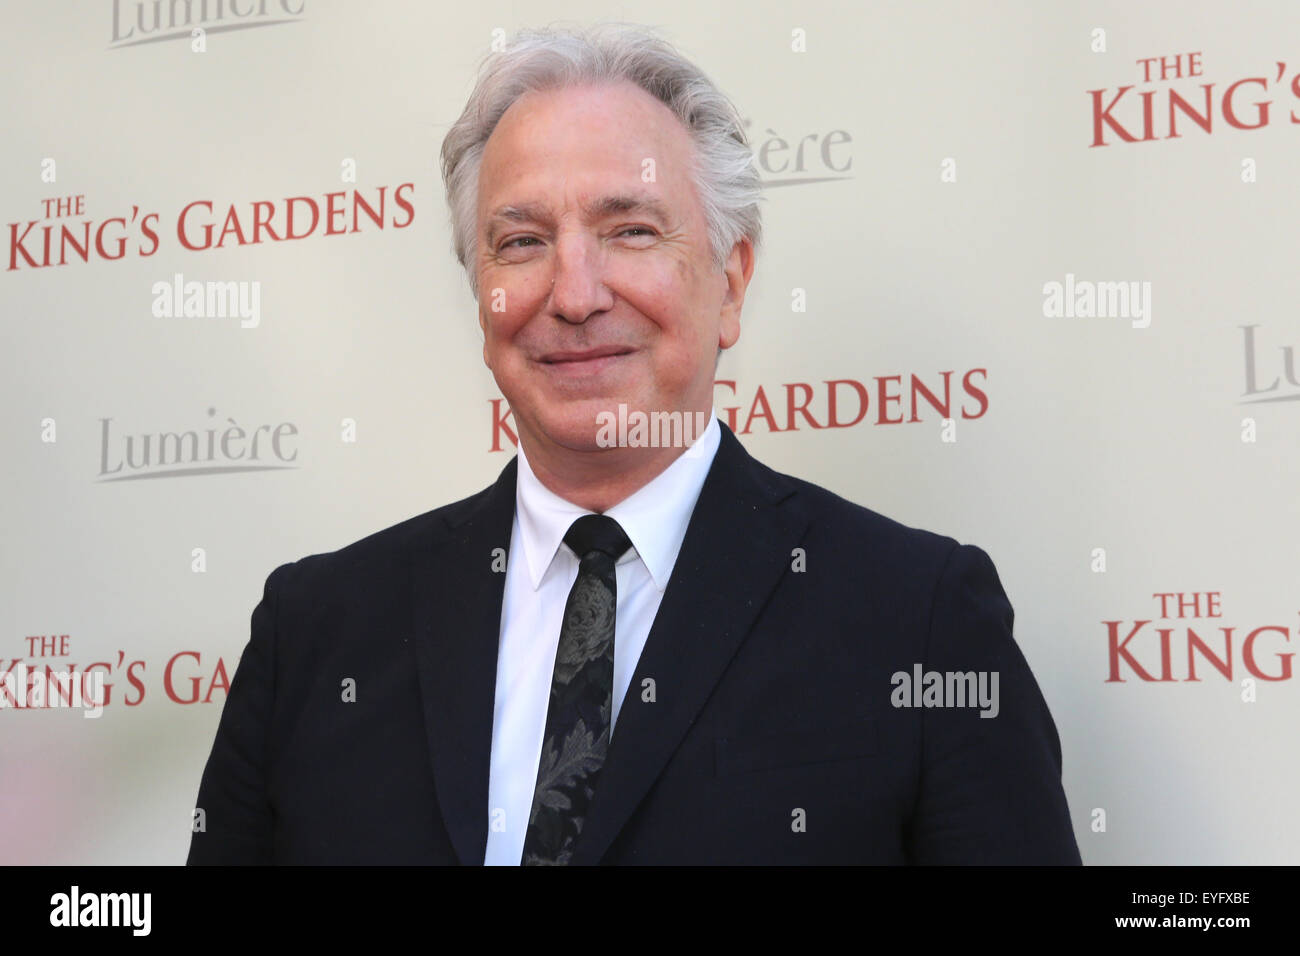 Alan Rickman attends the Dutch premiere of 'The King's Gardens' at Pathe Buitenhof in The Hague  Featuring: - Stock Image